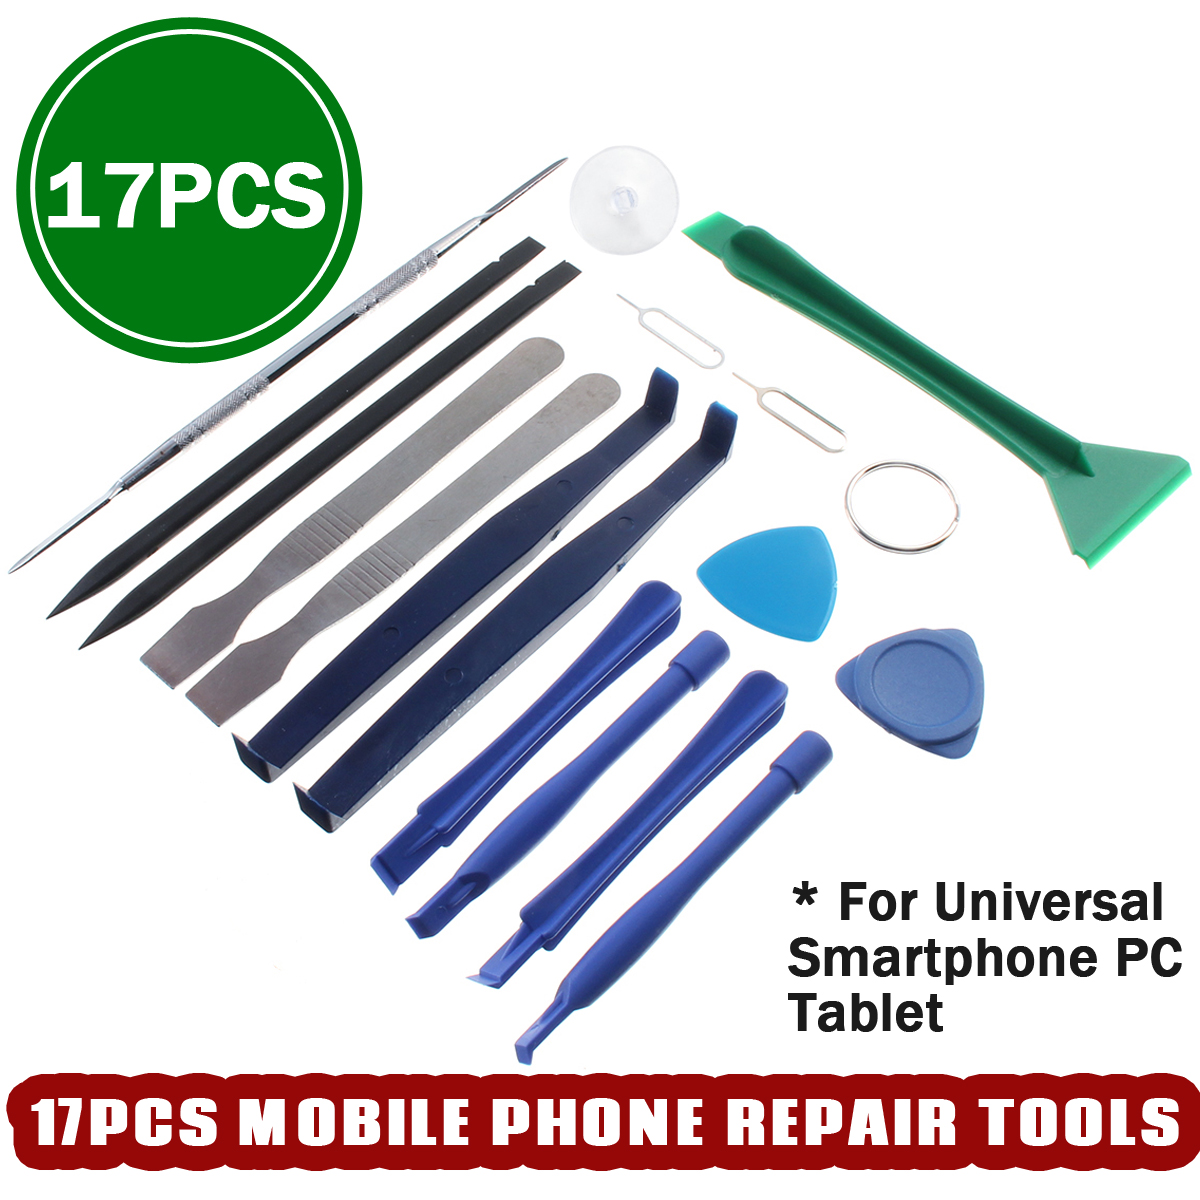 17 In 1 Universal Phone Opening Pry Repair Tools Set Kit for iPhone Smartphone PC Tablet